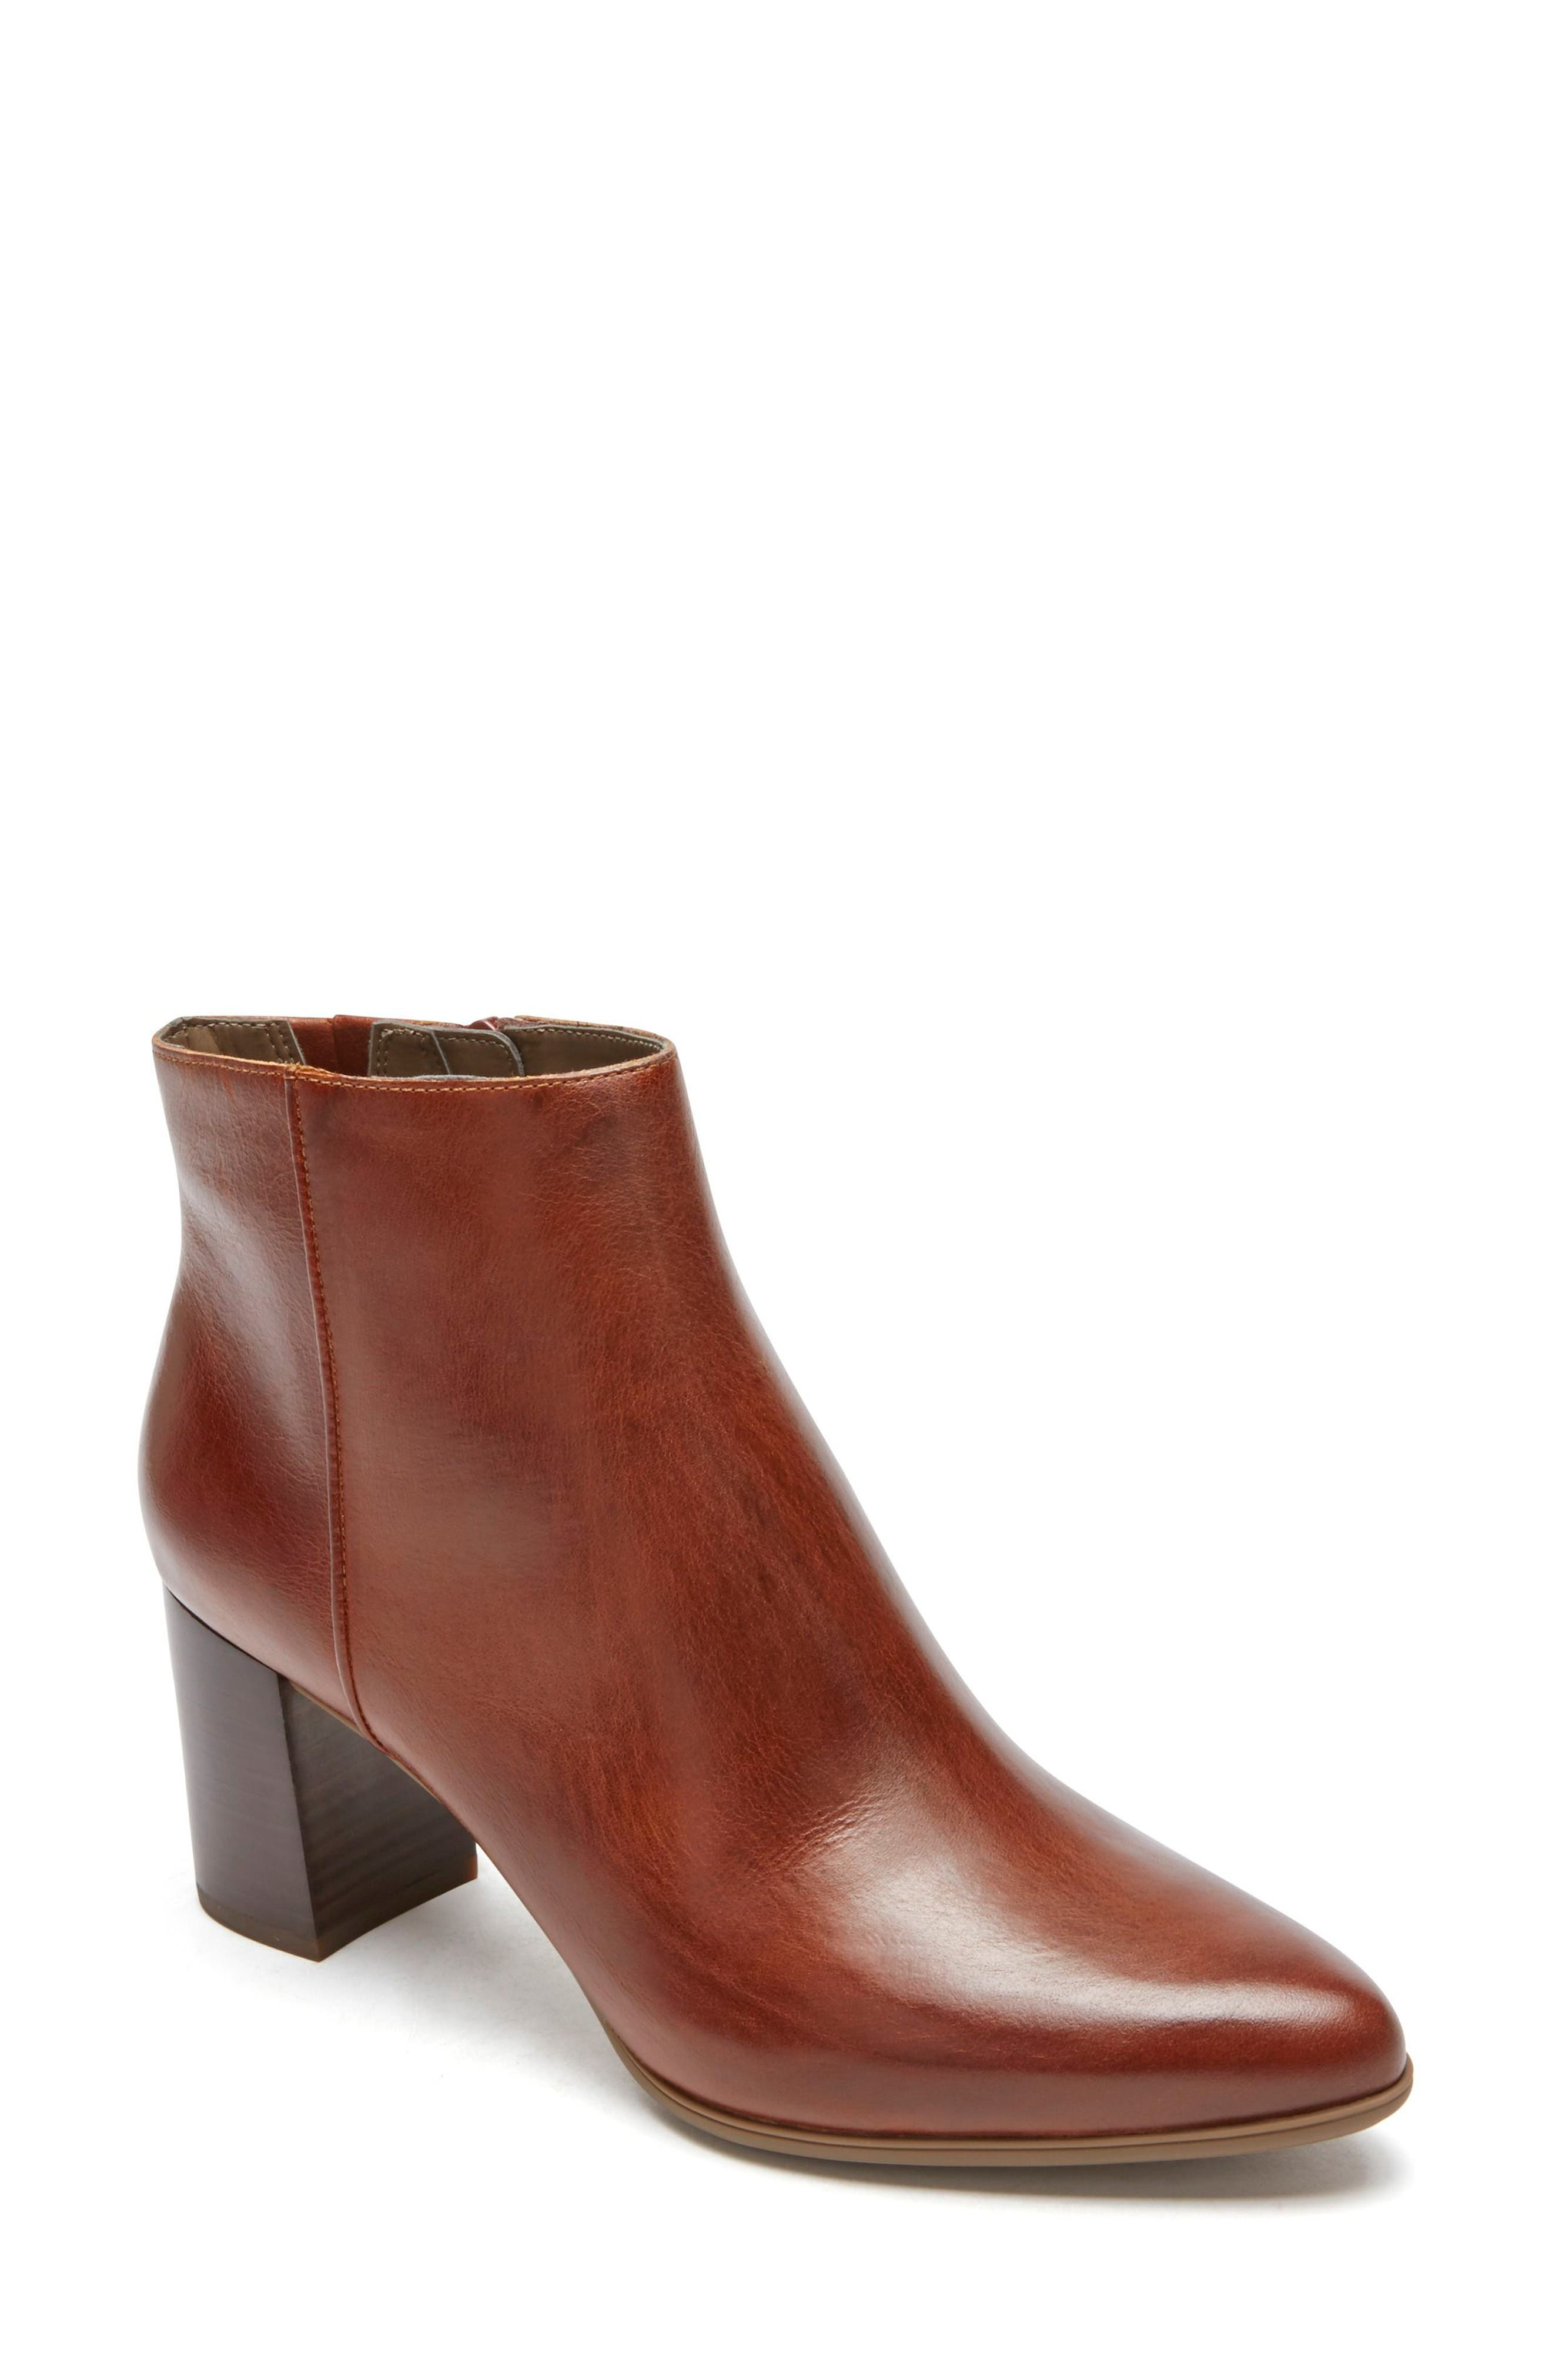 ladies rockport shoes in narrow fit boots the chemist perfume 95